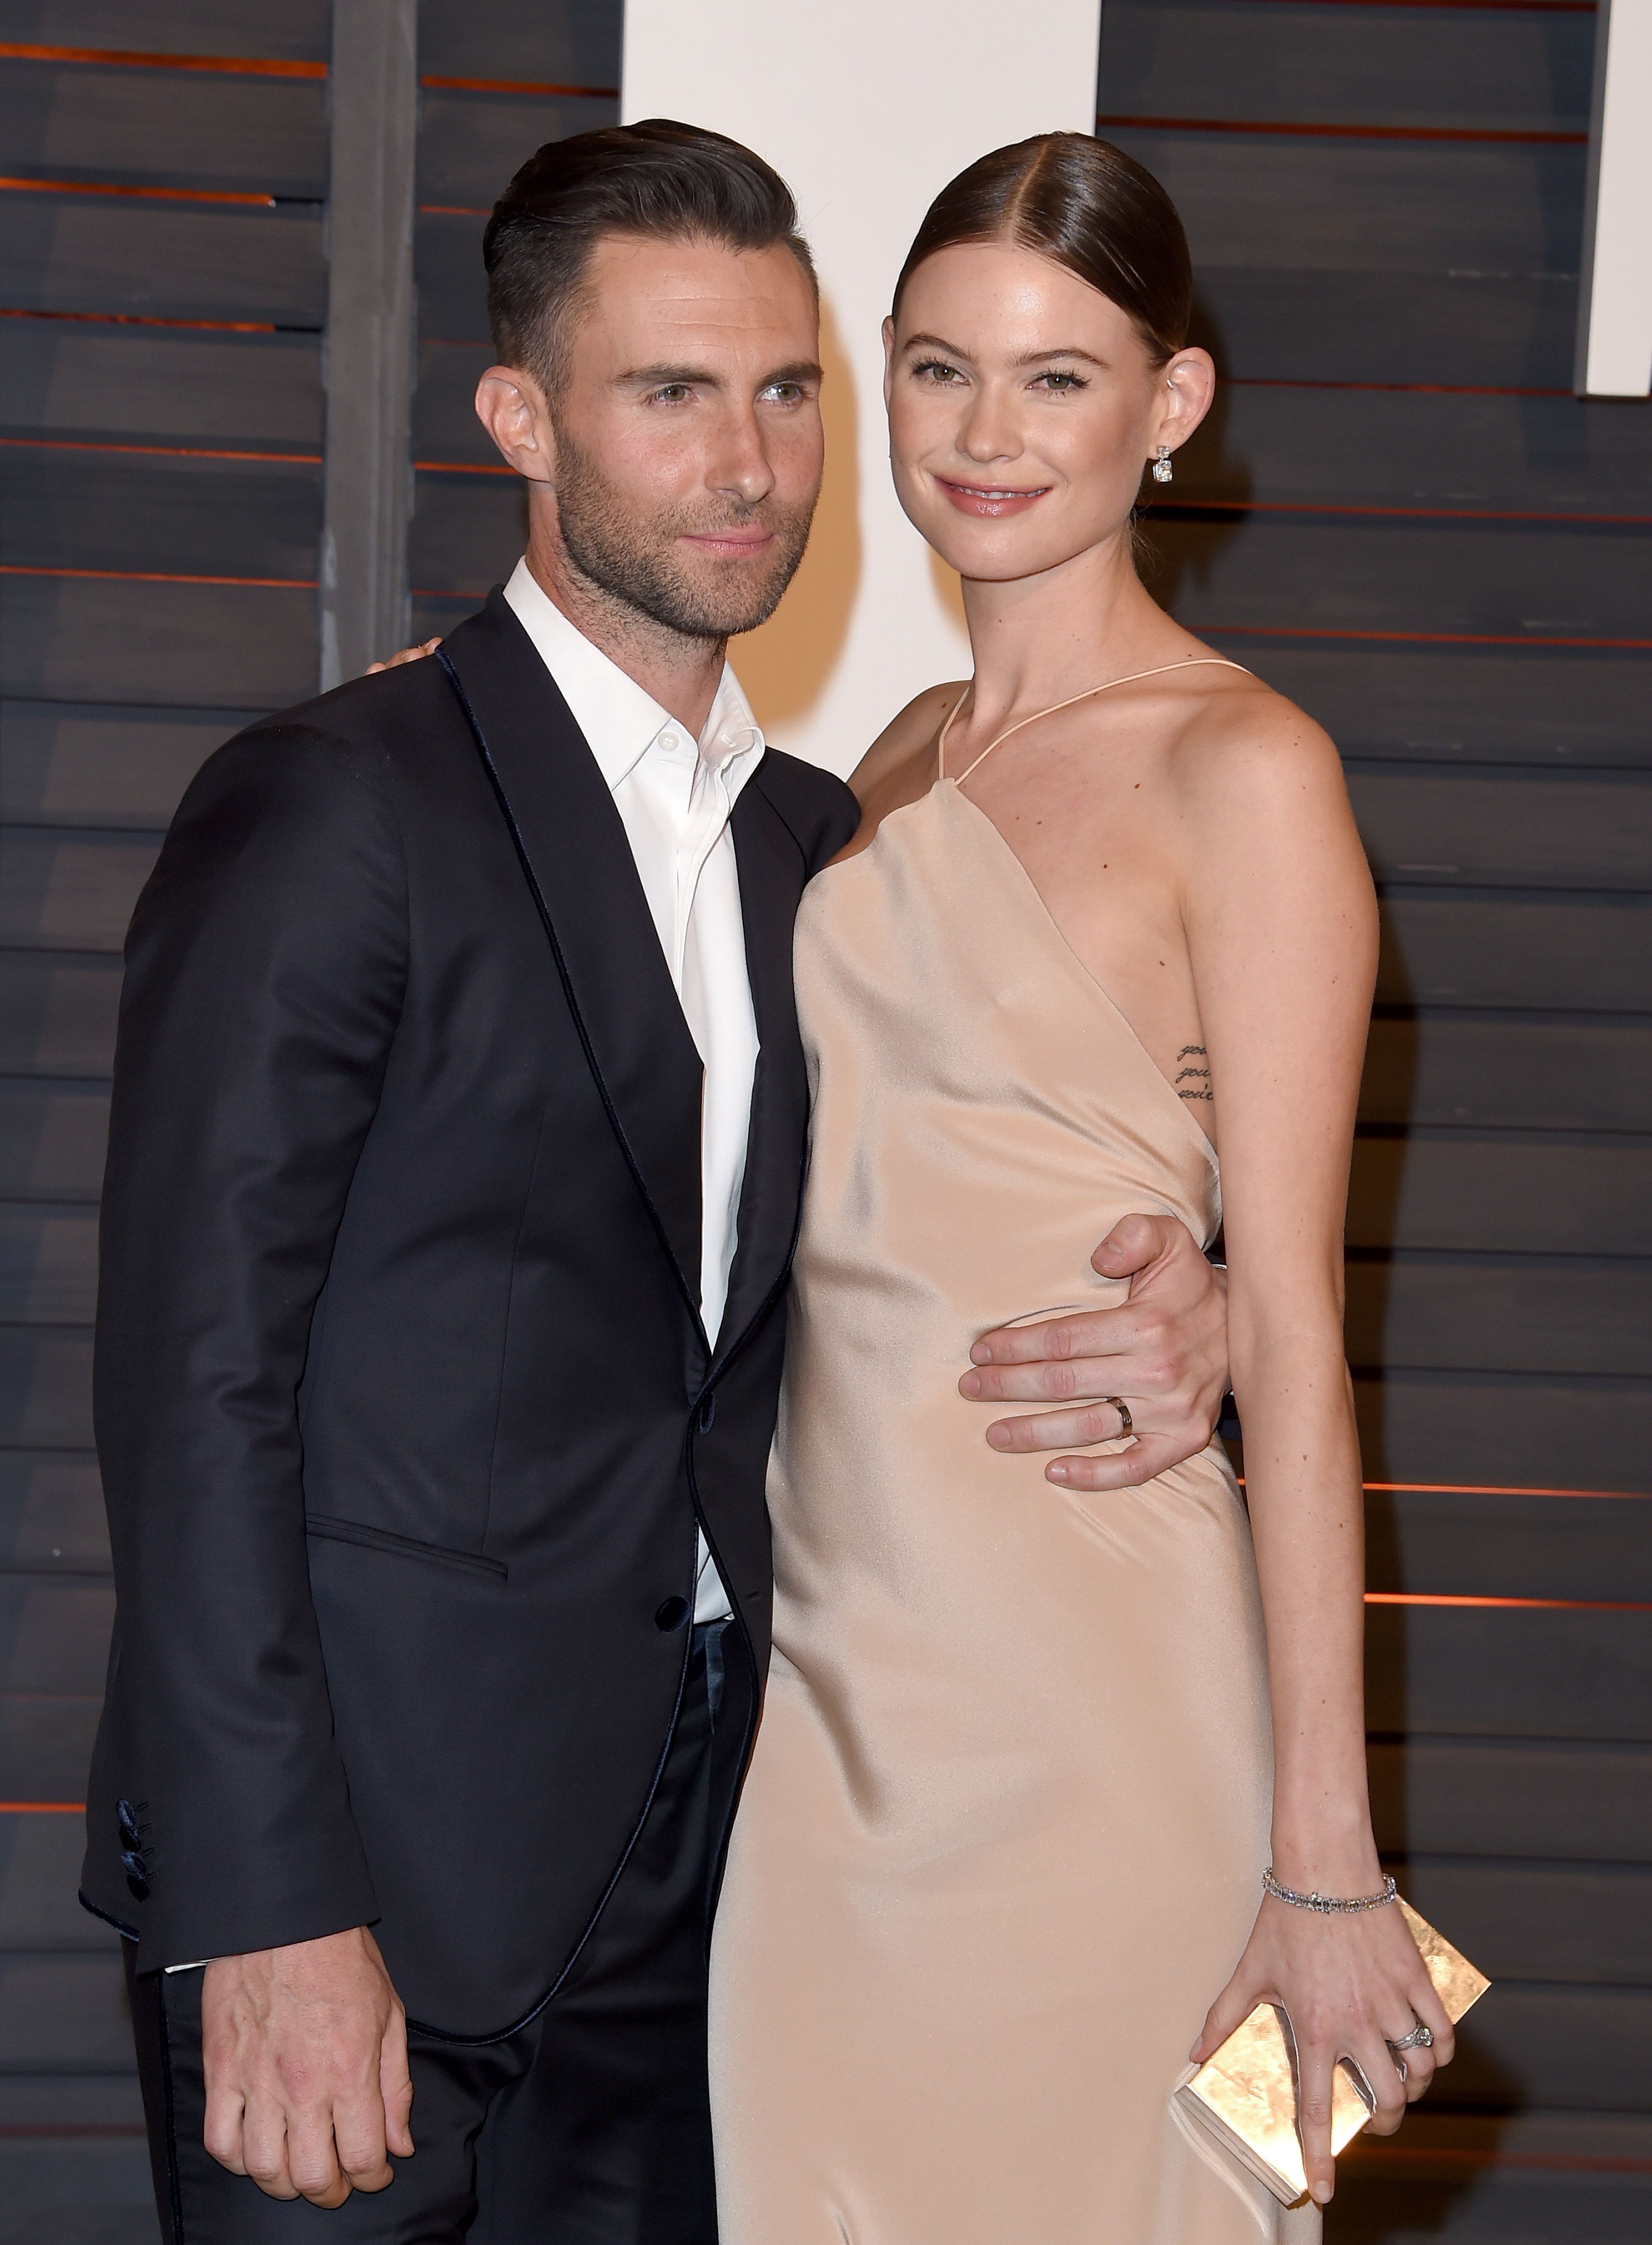 Behati Prinsloo Lifts Her Shirt and Shows the World Her Baby Bump